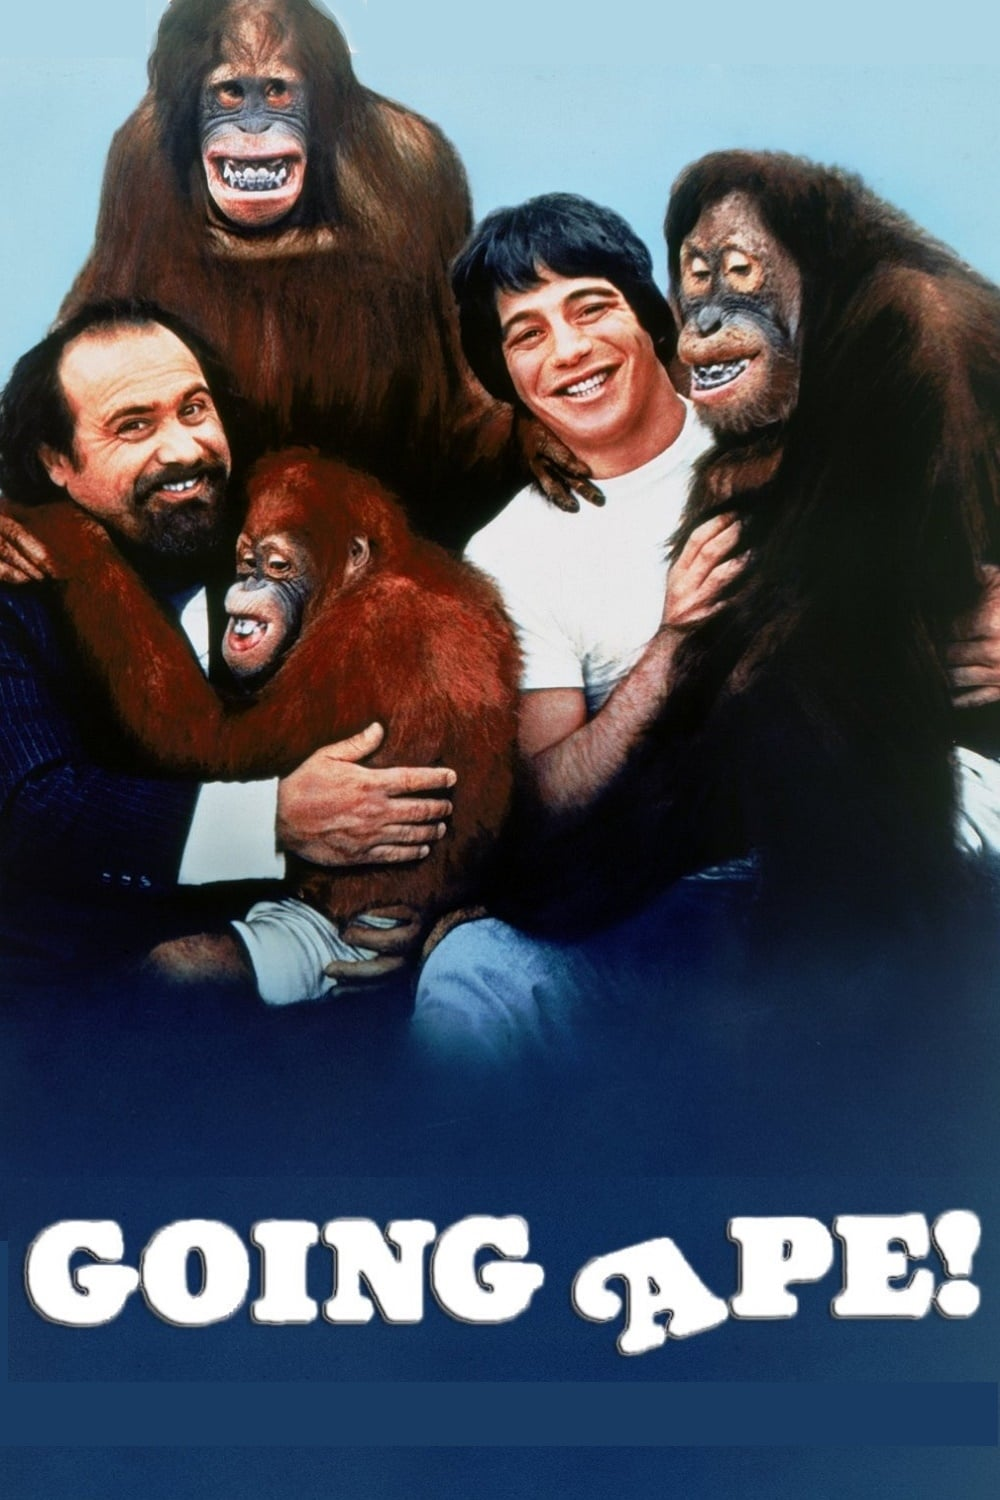 Going Ape! on FREECABLE TV